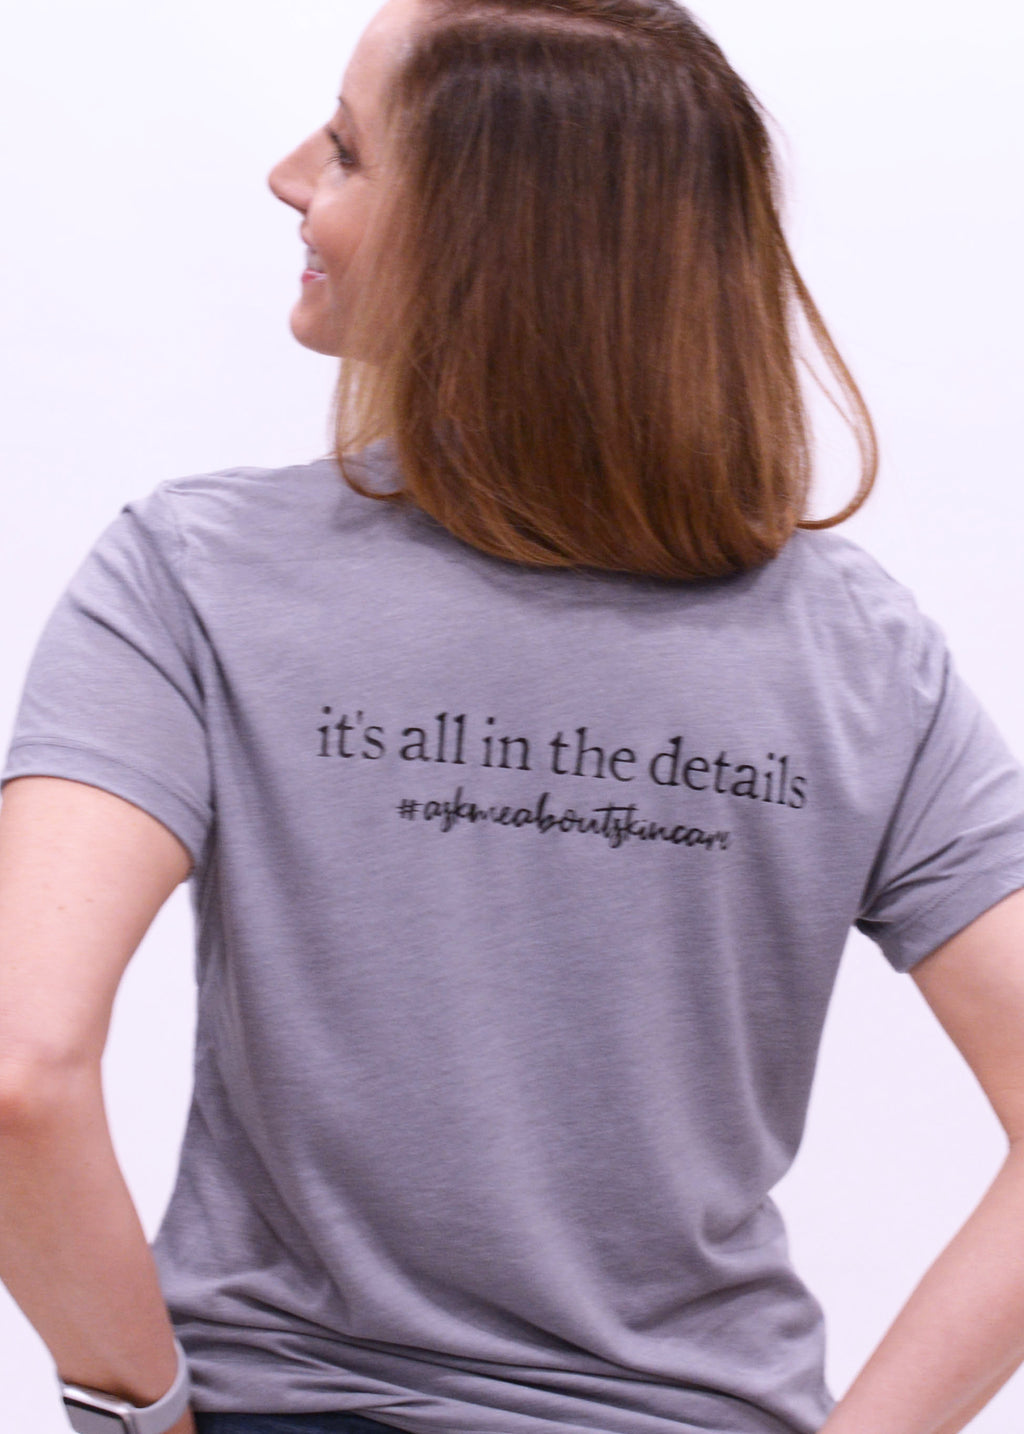 It's All In the Details Ladies Loose Fit Tee